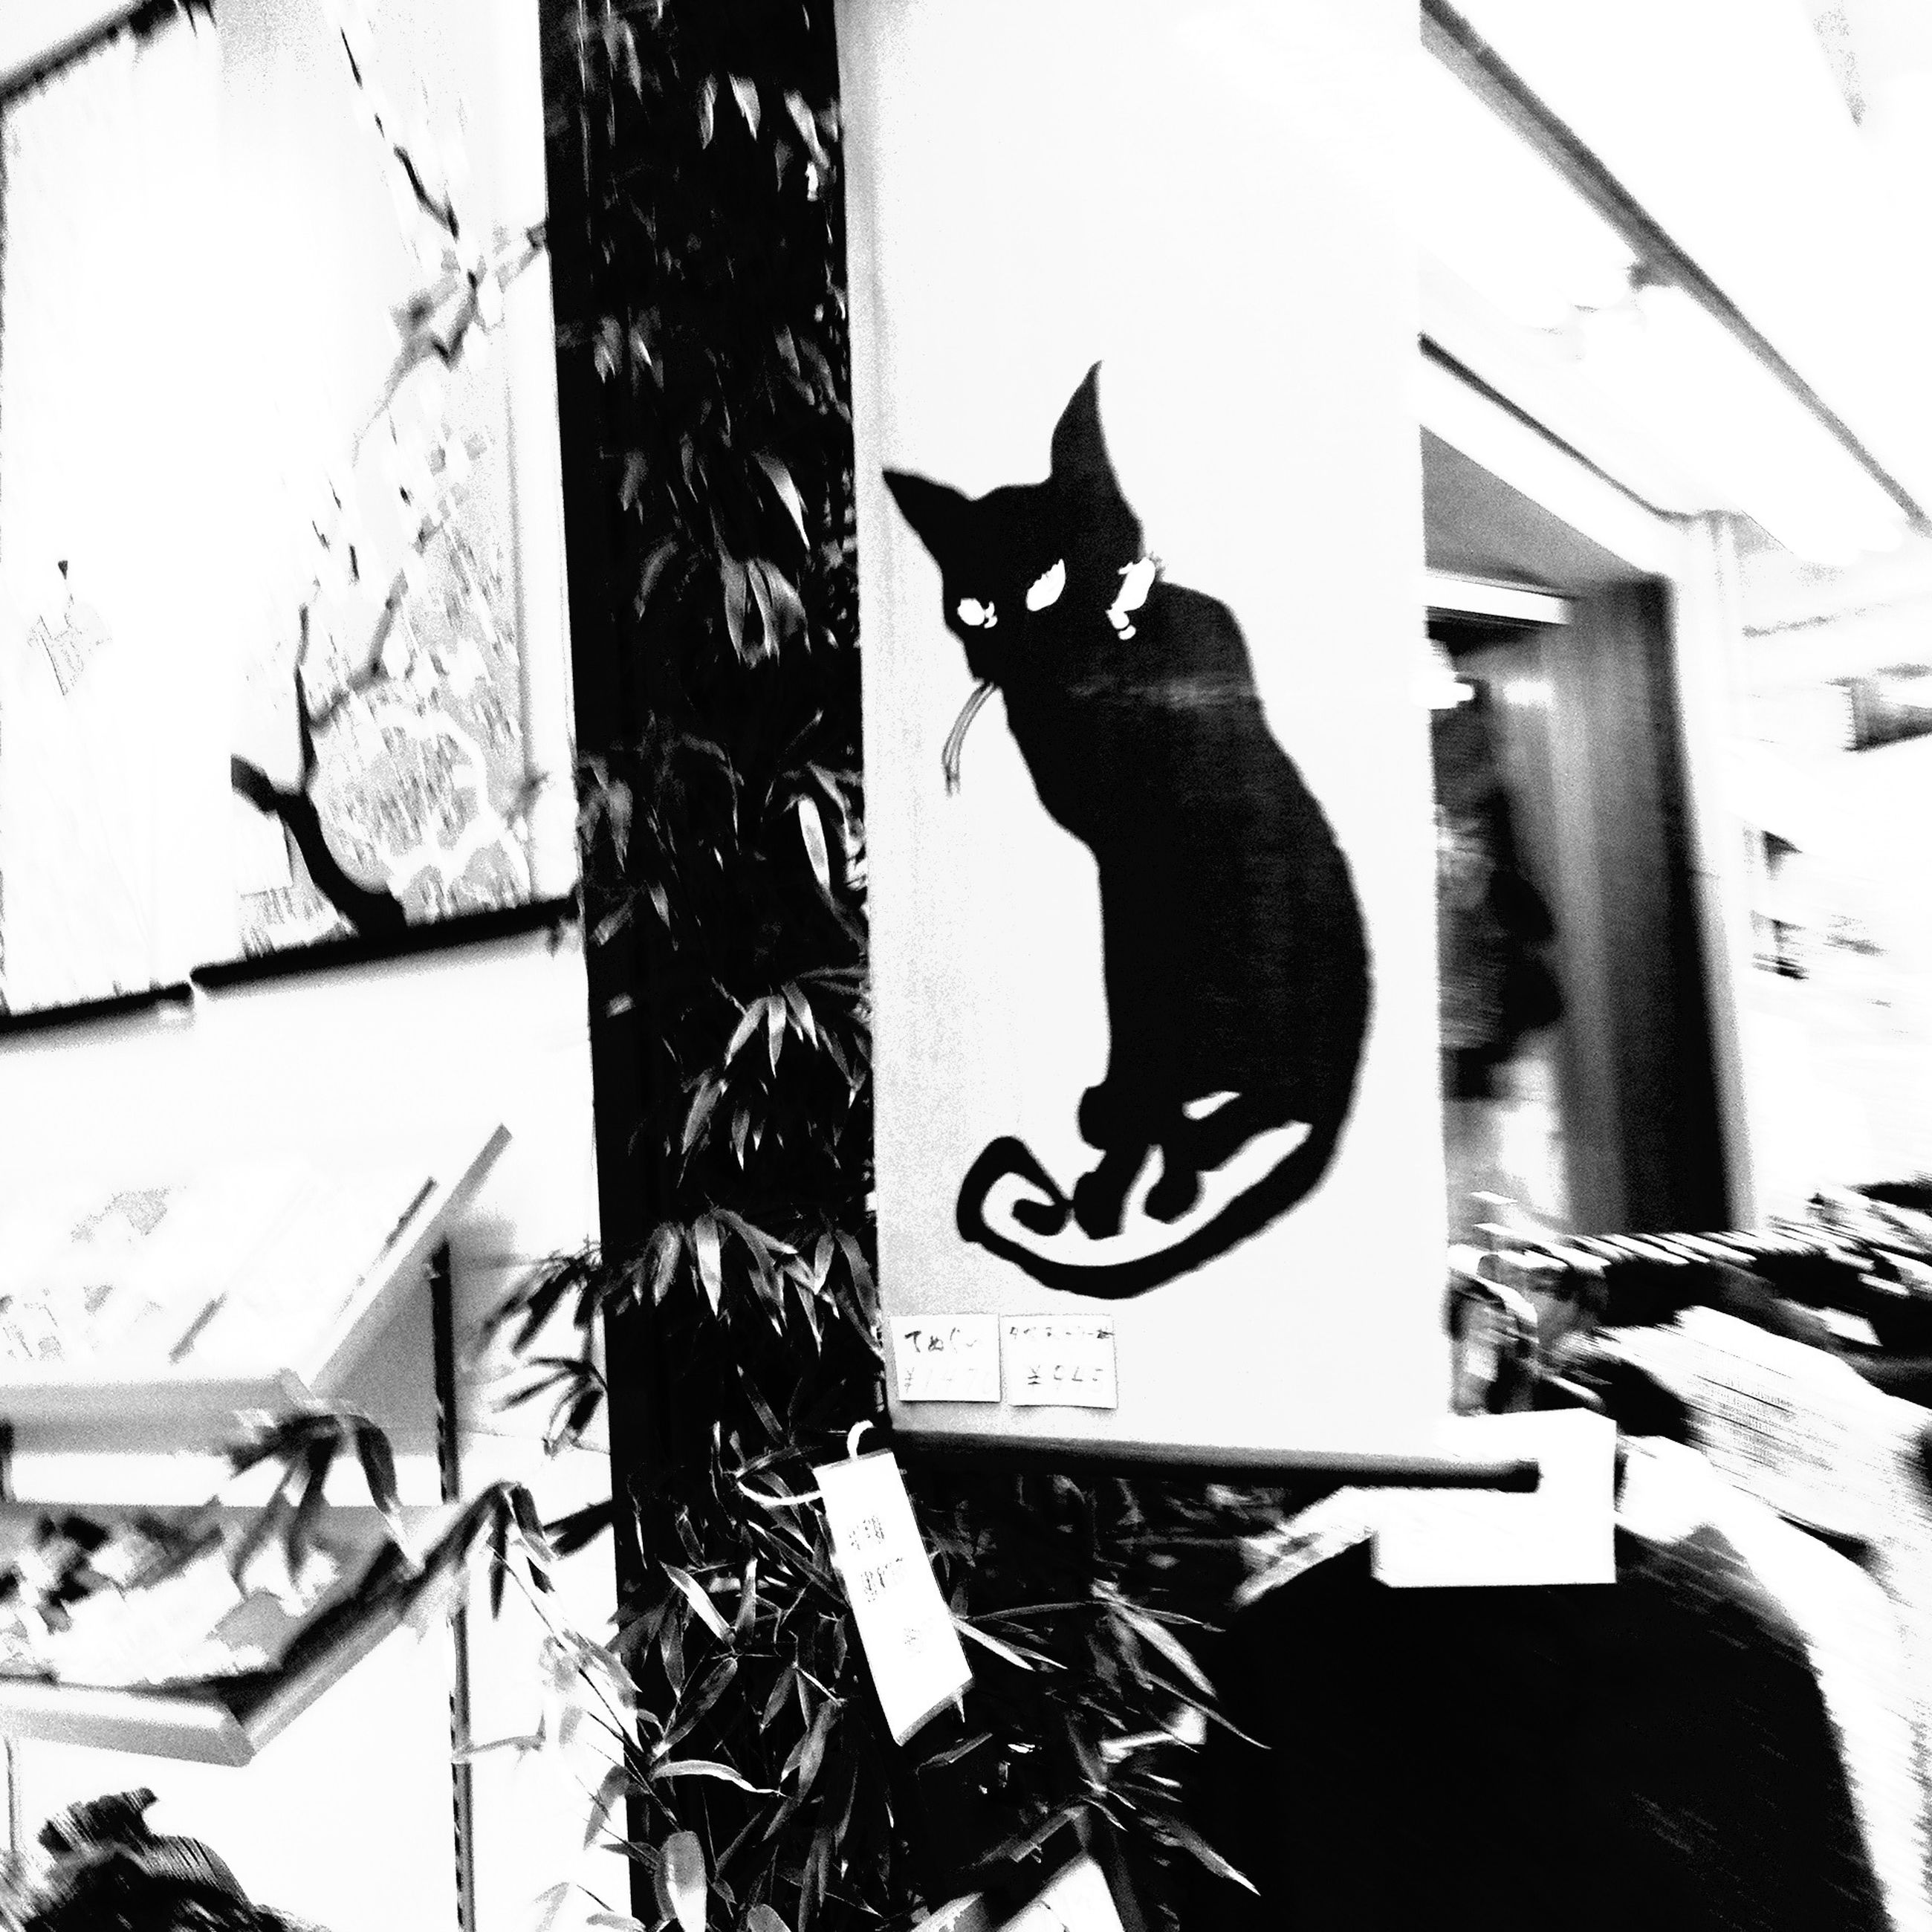 animal themes, one animal, pets, cat, domestic cat, domestic animals, black color, mammal, low angle view, text, animal representation, human representation, feline, no people, art, day, wall - building feature, communication, creativity, outdoors